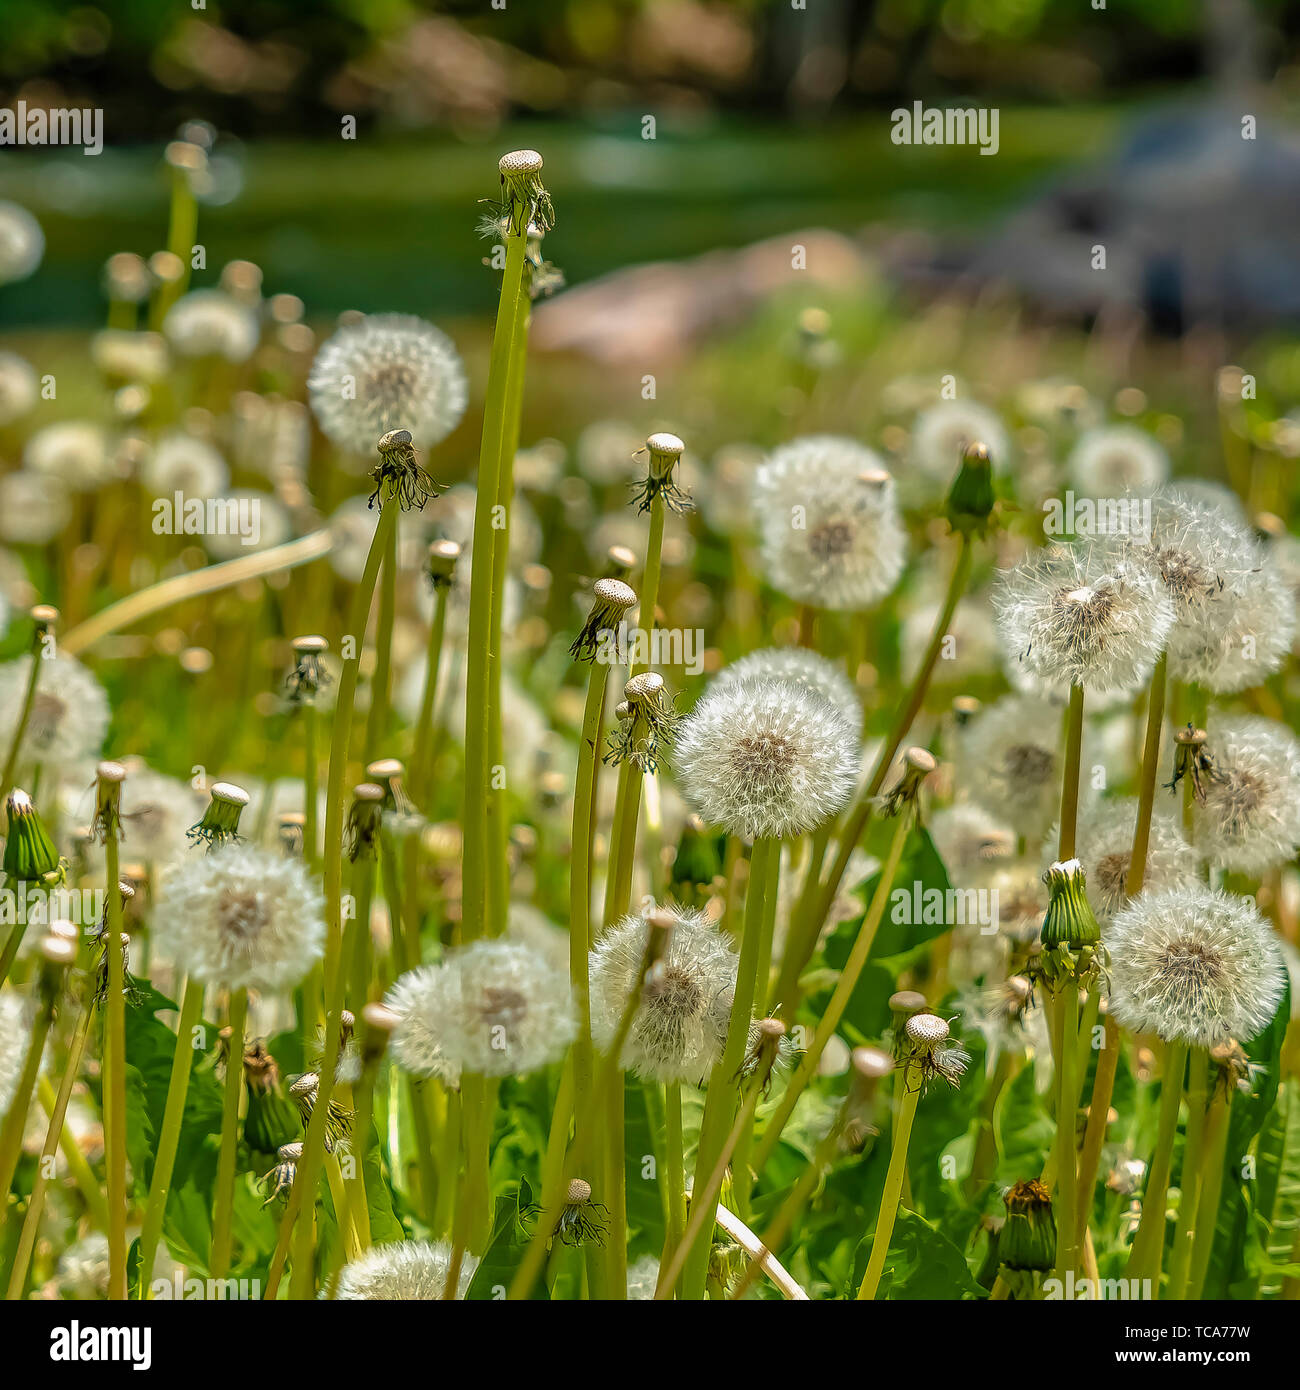 Square Close up of dandelions with white flowers and bright green stems on a sunny day - Stock Image